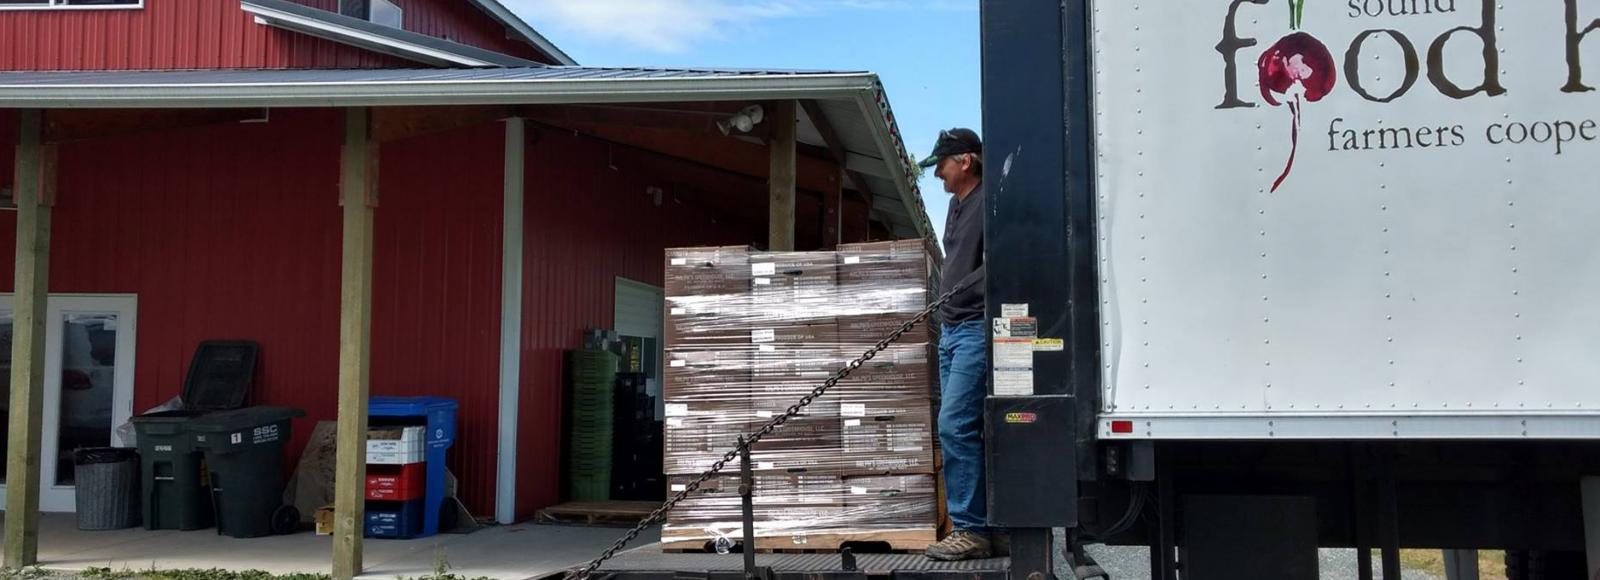 Man in baseball cap, dark shirt, and jeans stands on a distribution truck ramp, lowering a pallet of product.